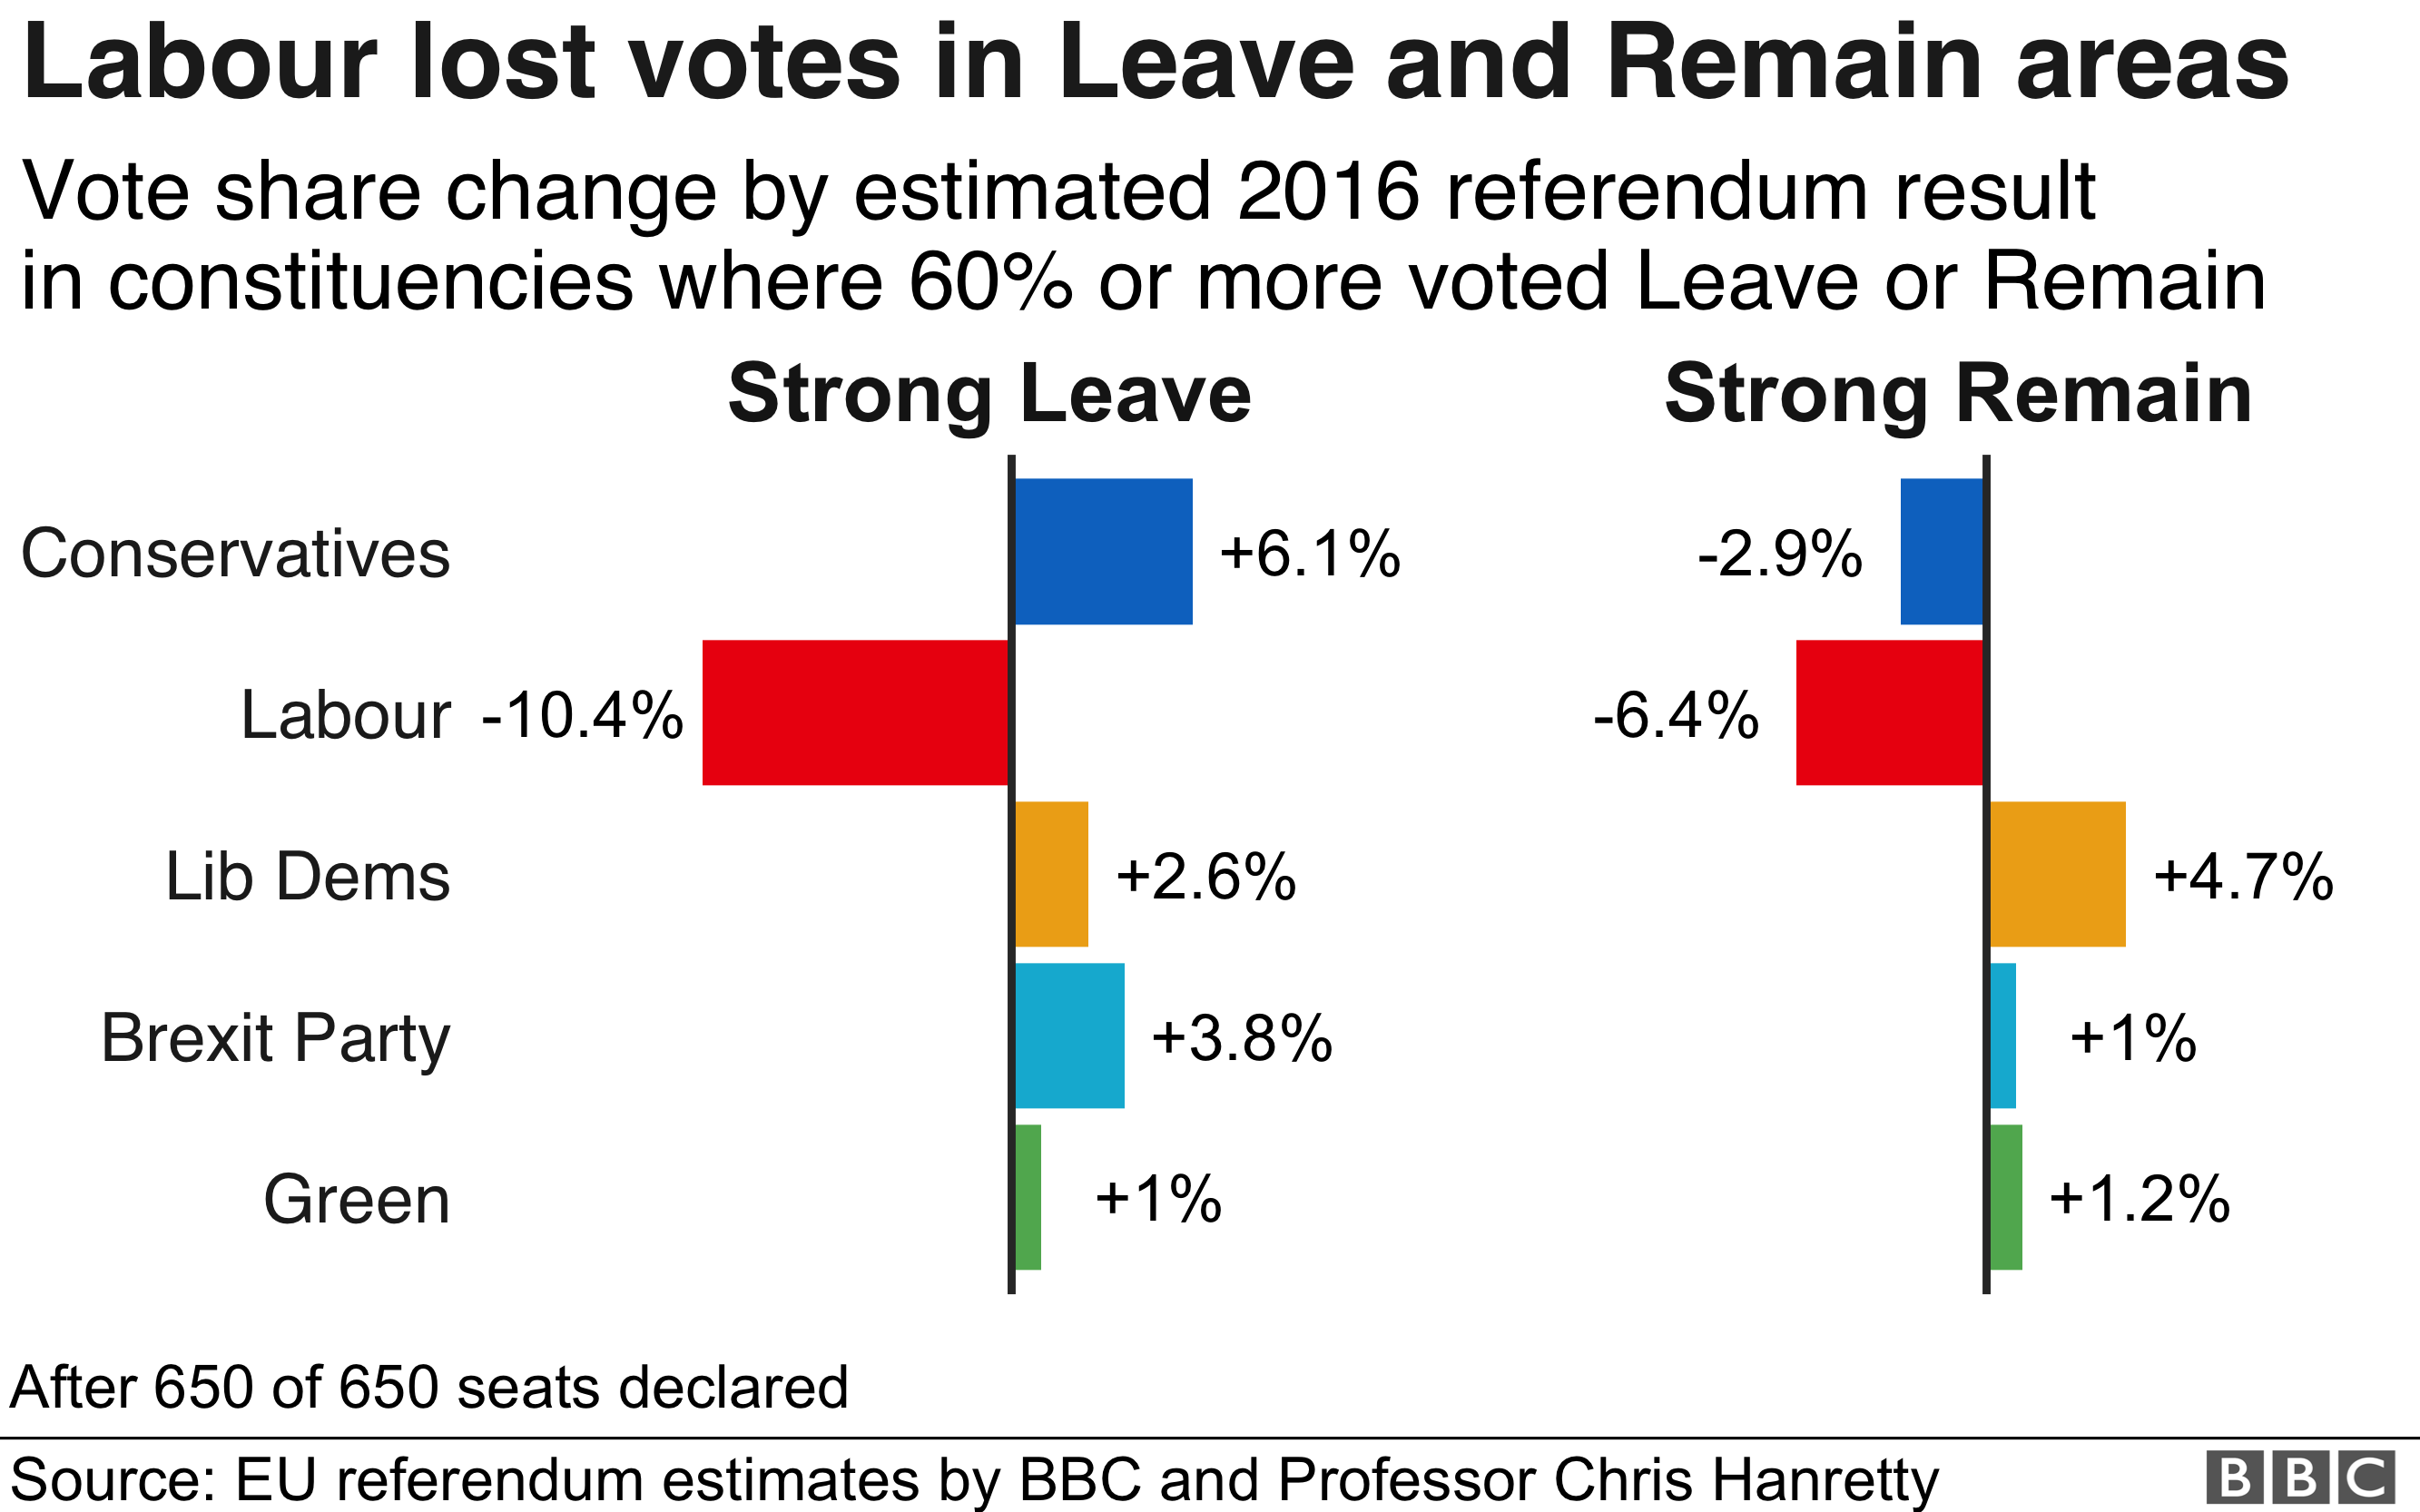 vote share changes in leave and remain areas